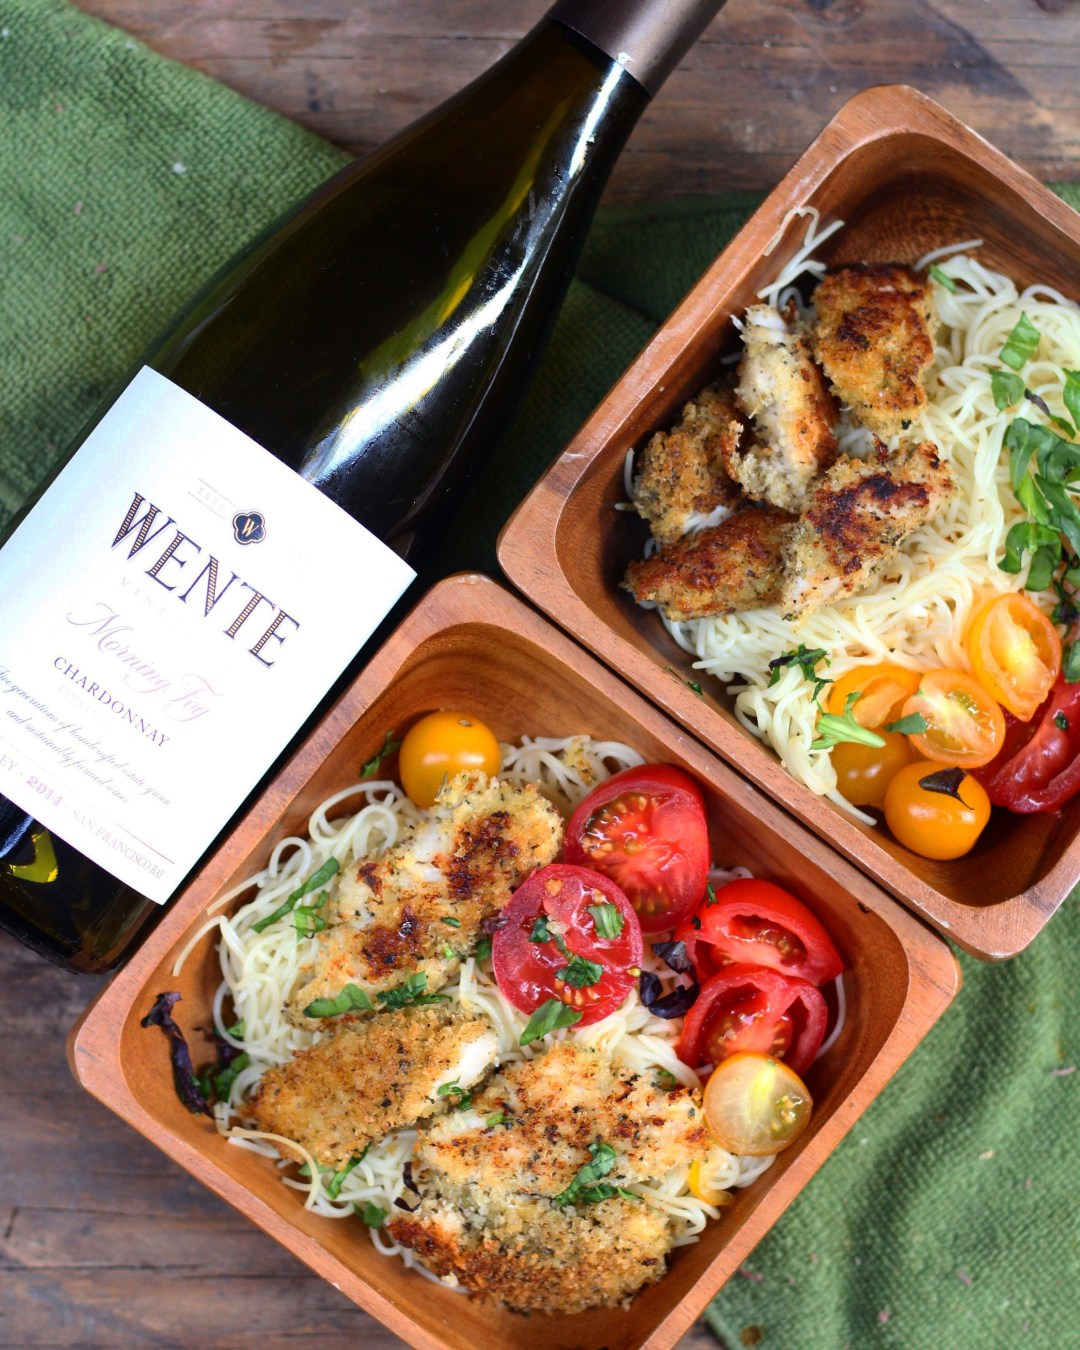 chicken-bruschetta-pasta-salad-with-wente-wines-5